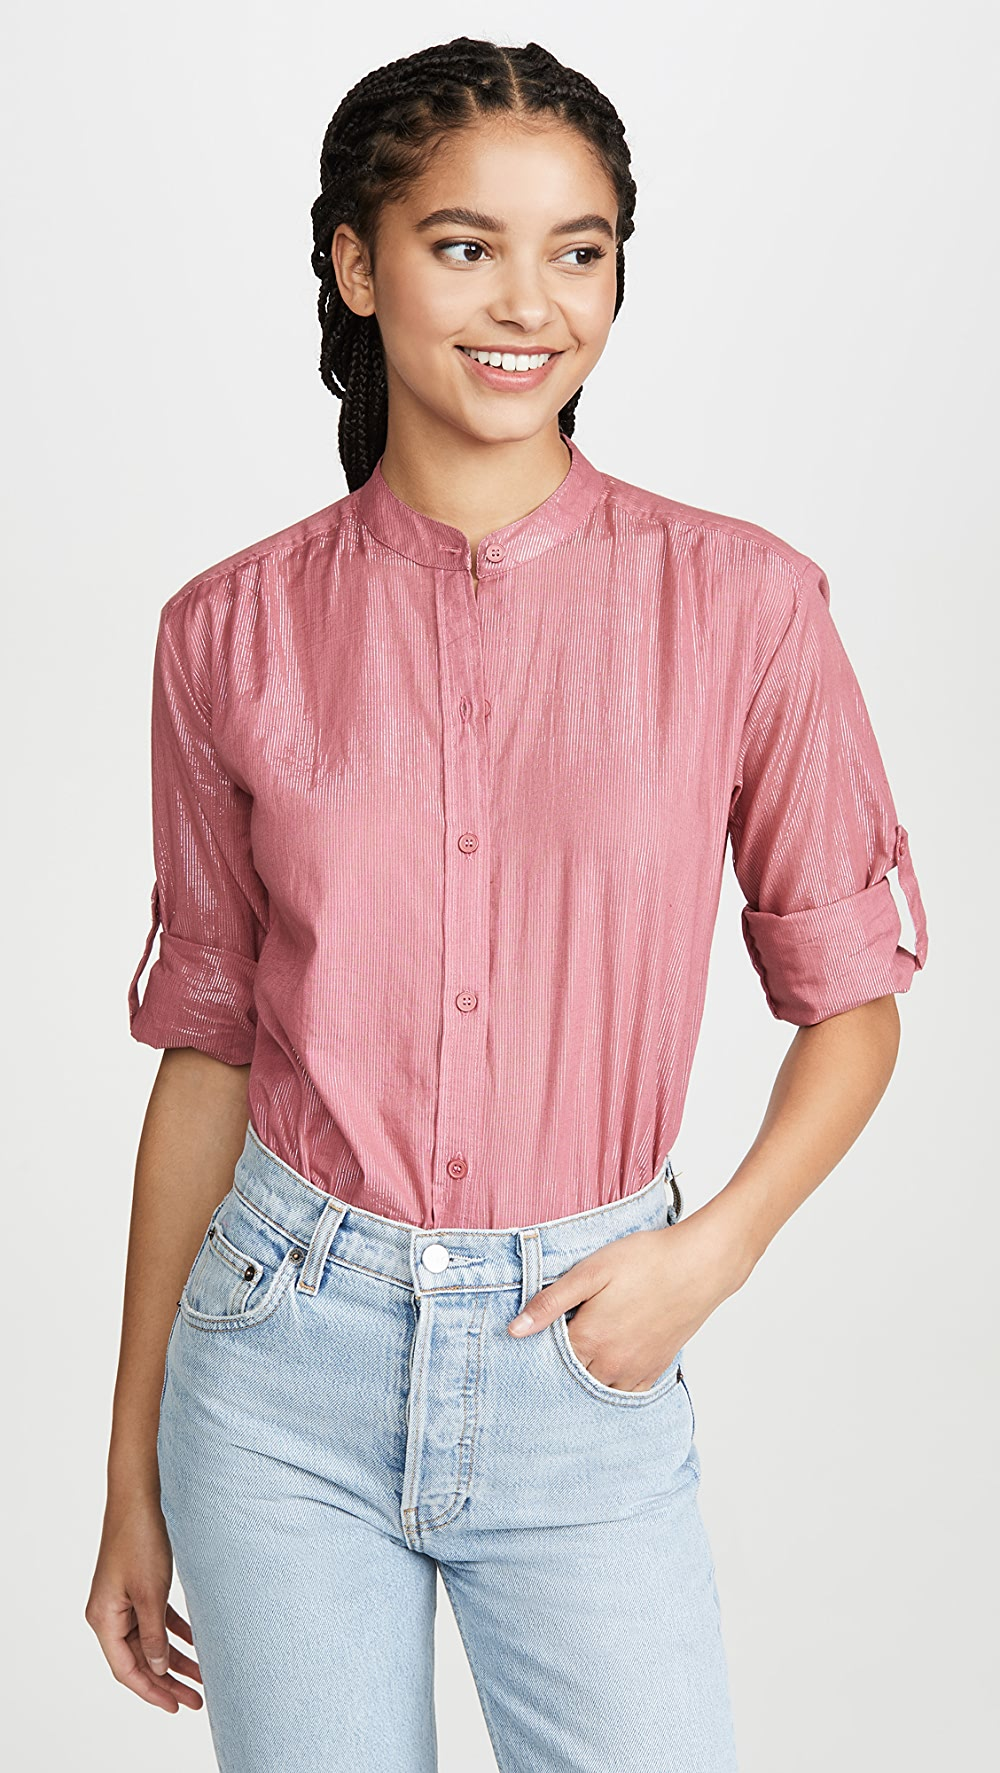 Alert Kondi - Metallic Blouse To Clear Out Annoyance And Quench Thirst